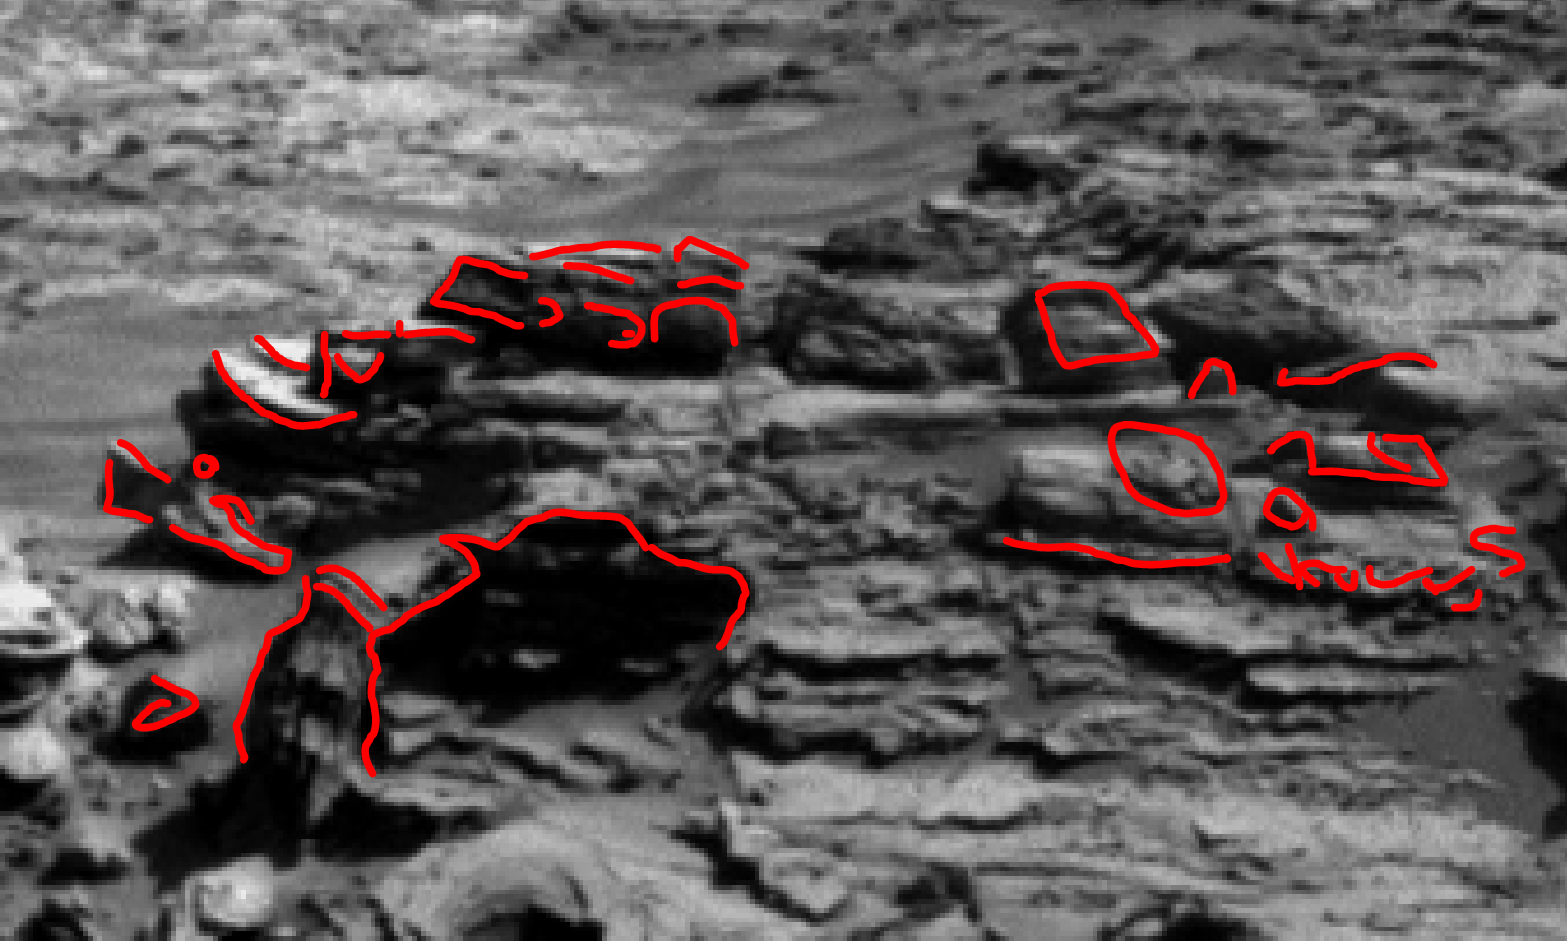 mars sol 1301 anomaly-artifacts 2a was life on mars